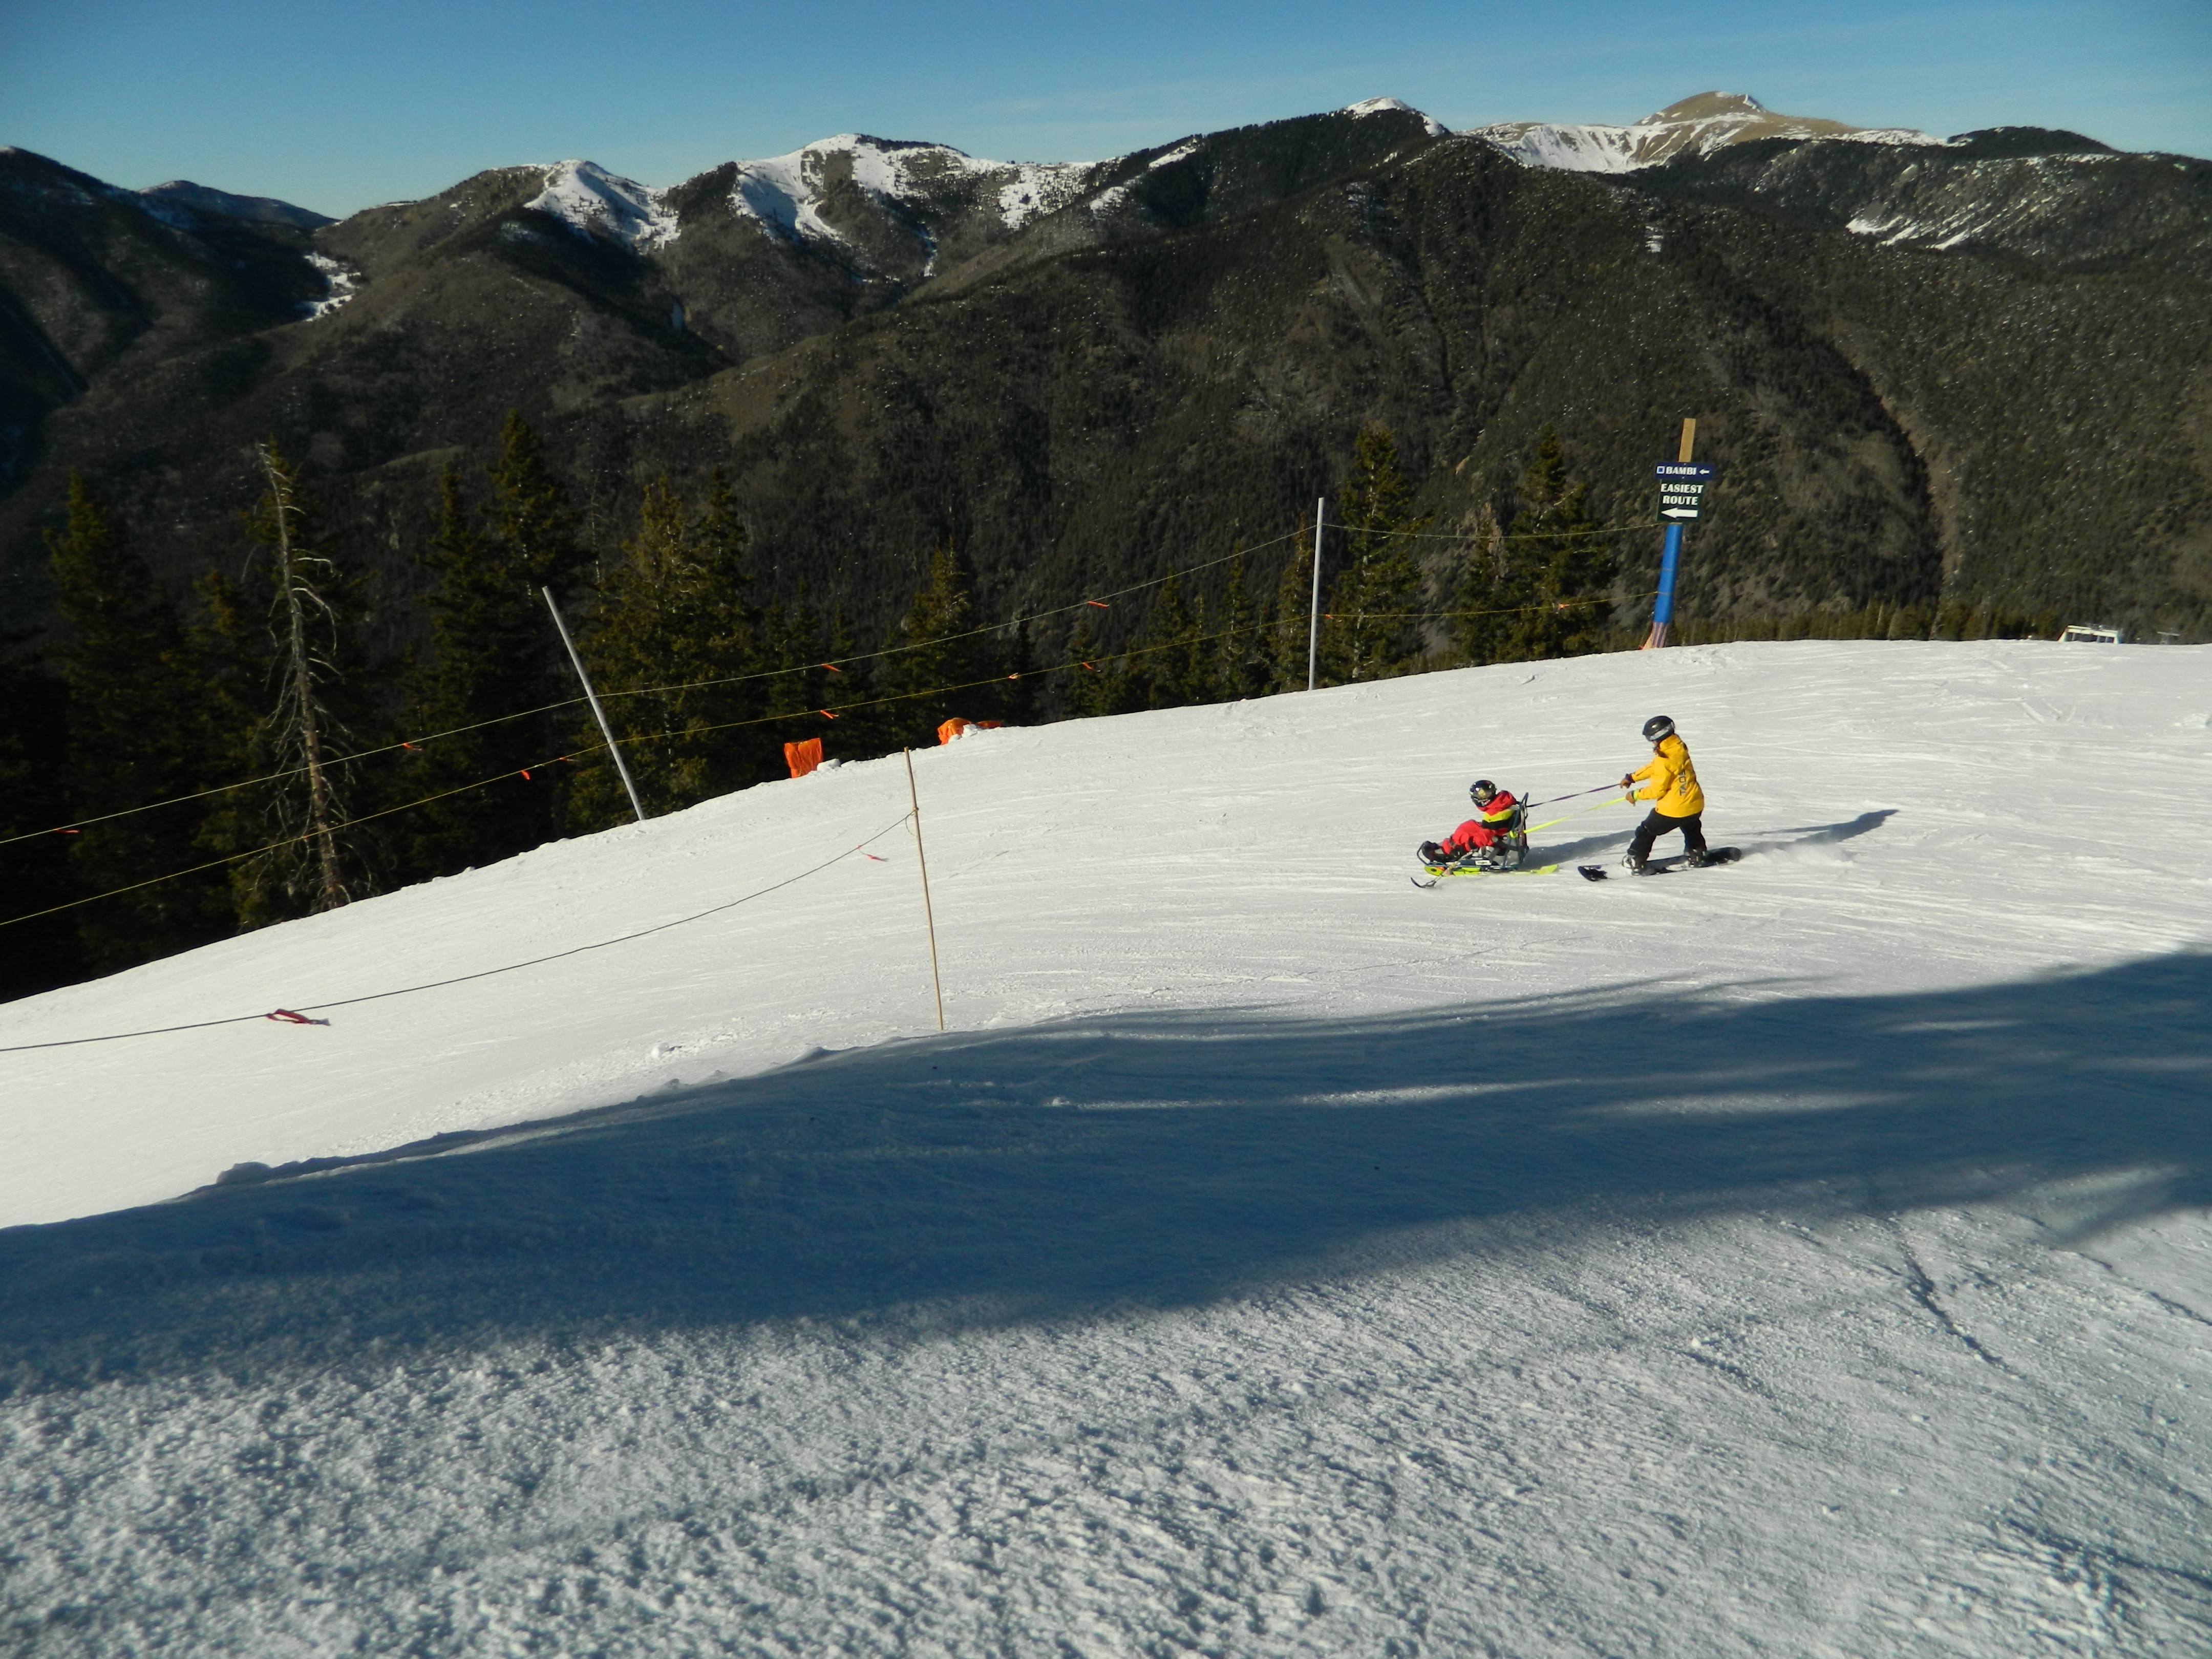 A snowboarder holds onto ropes attached to a disabled skier in a ski chair as they slide downhill. Mountain peaks behind.